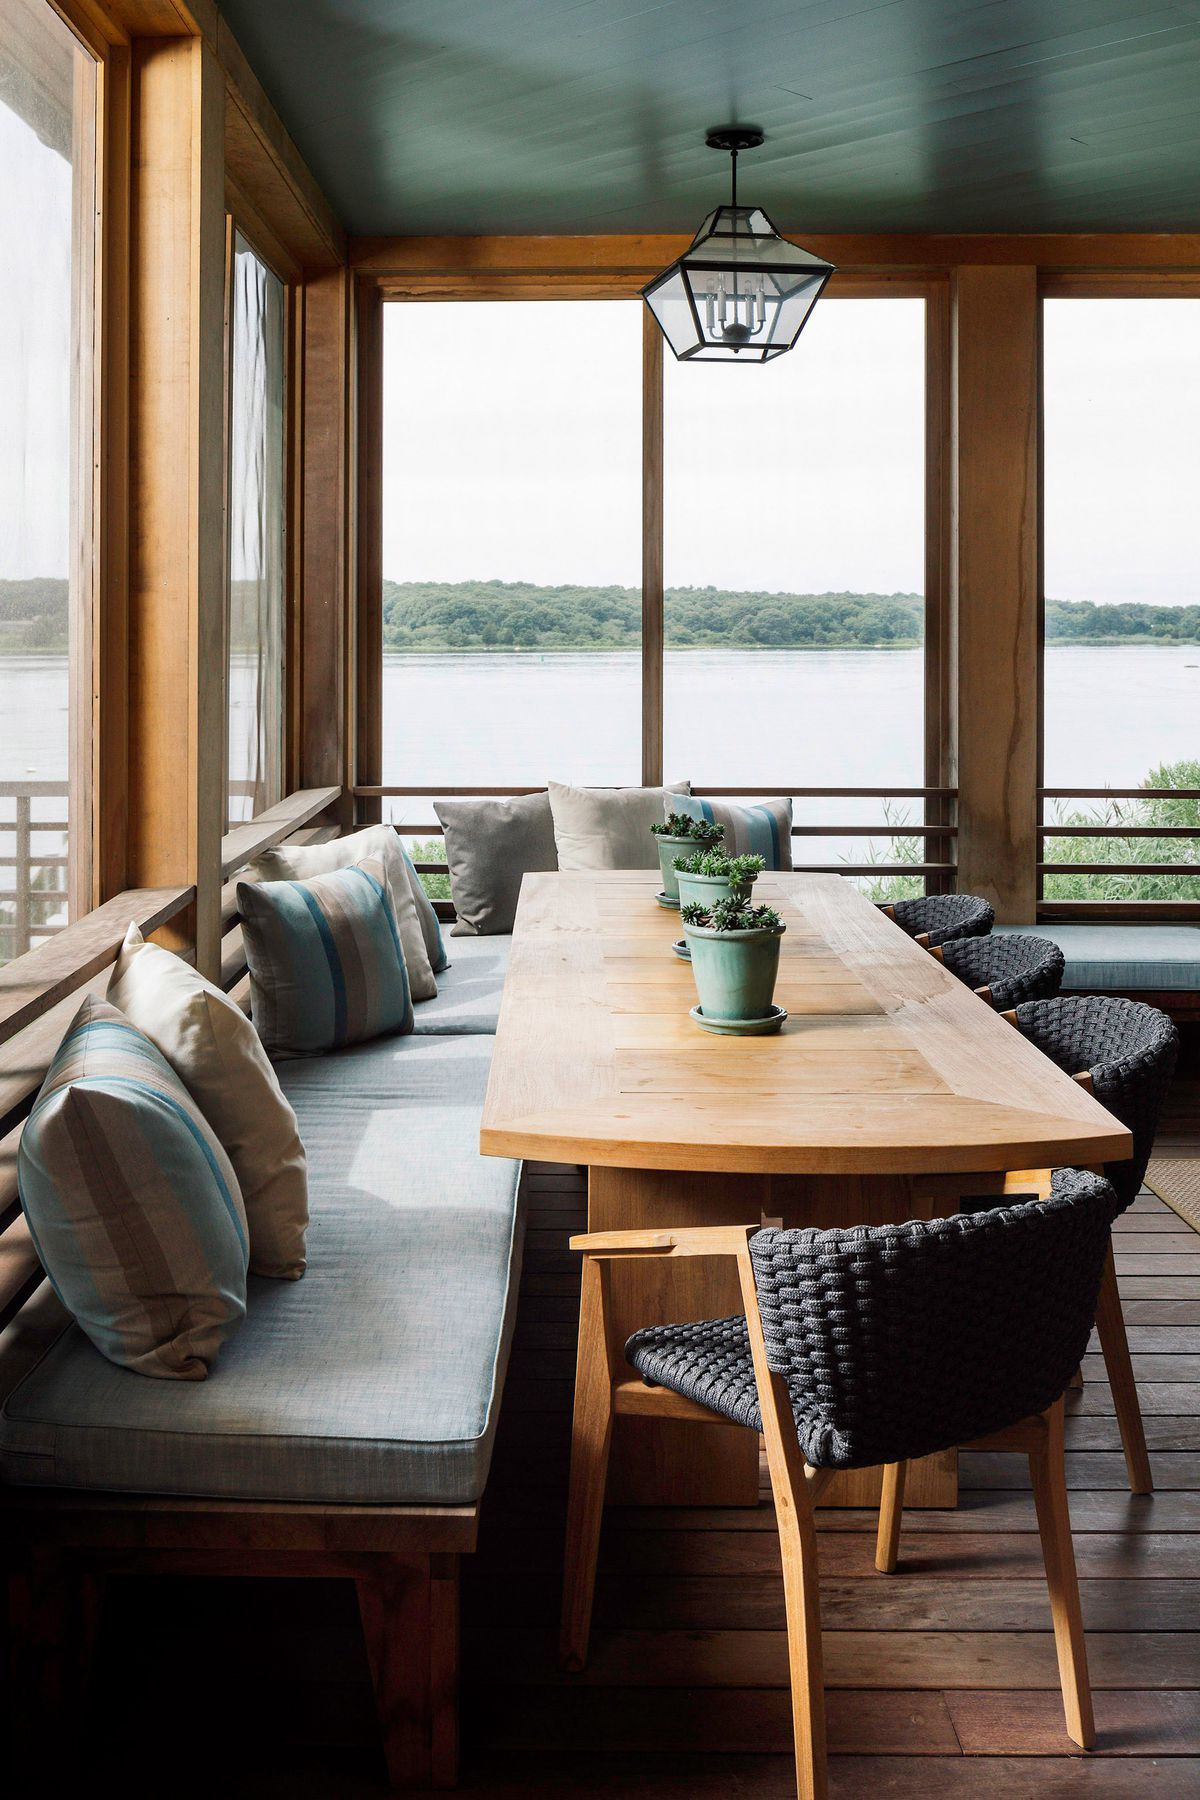 A screened in porch has a long table surrounded by a banquette and chairs.